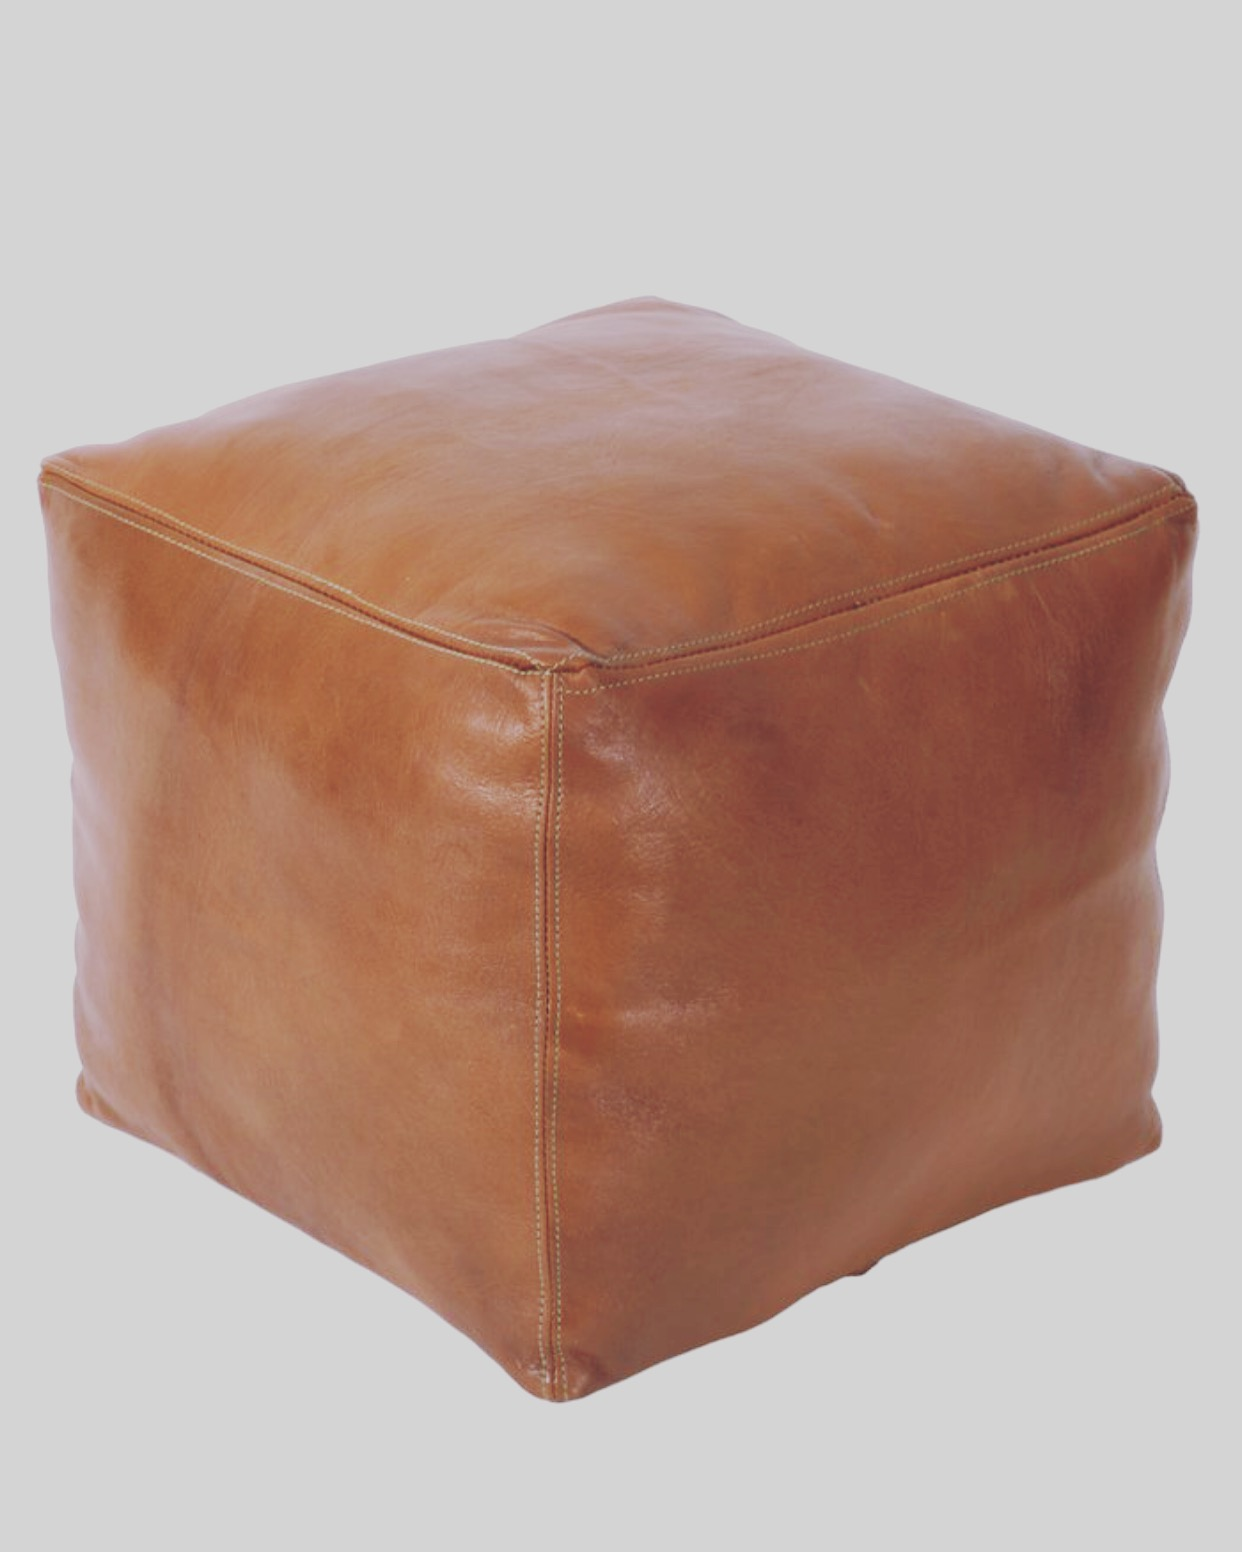 Leather Pouf $45